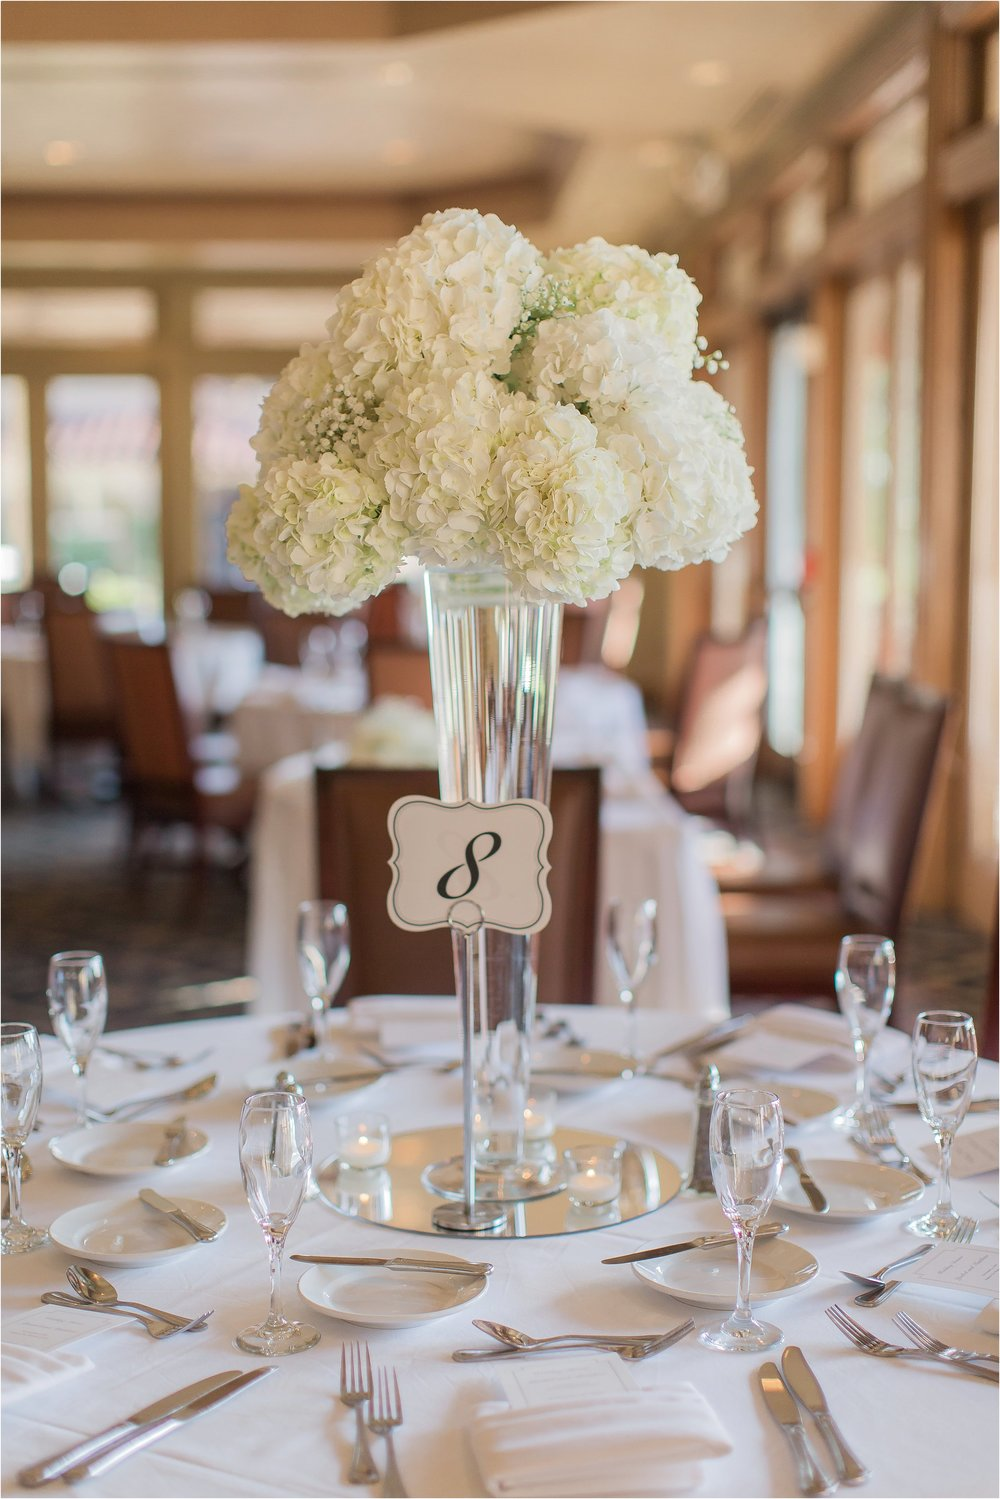 Gorgeous High Hydrangea Centerpieces at Mission Inn Wedding